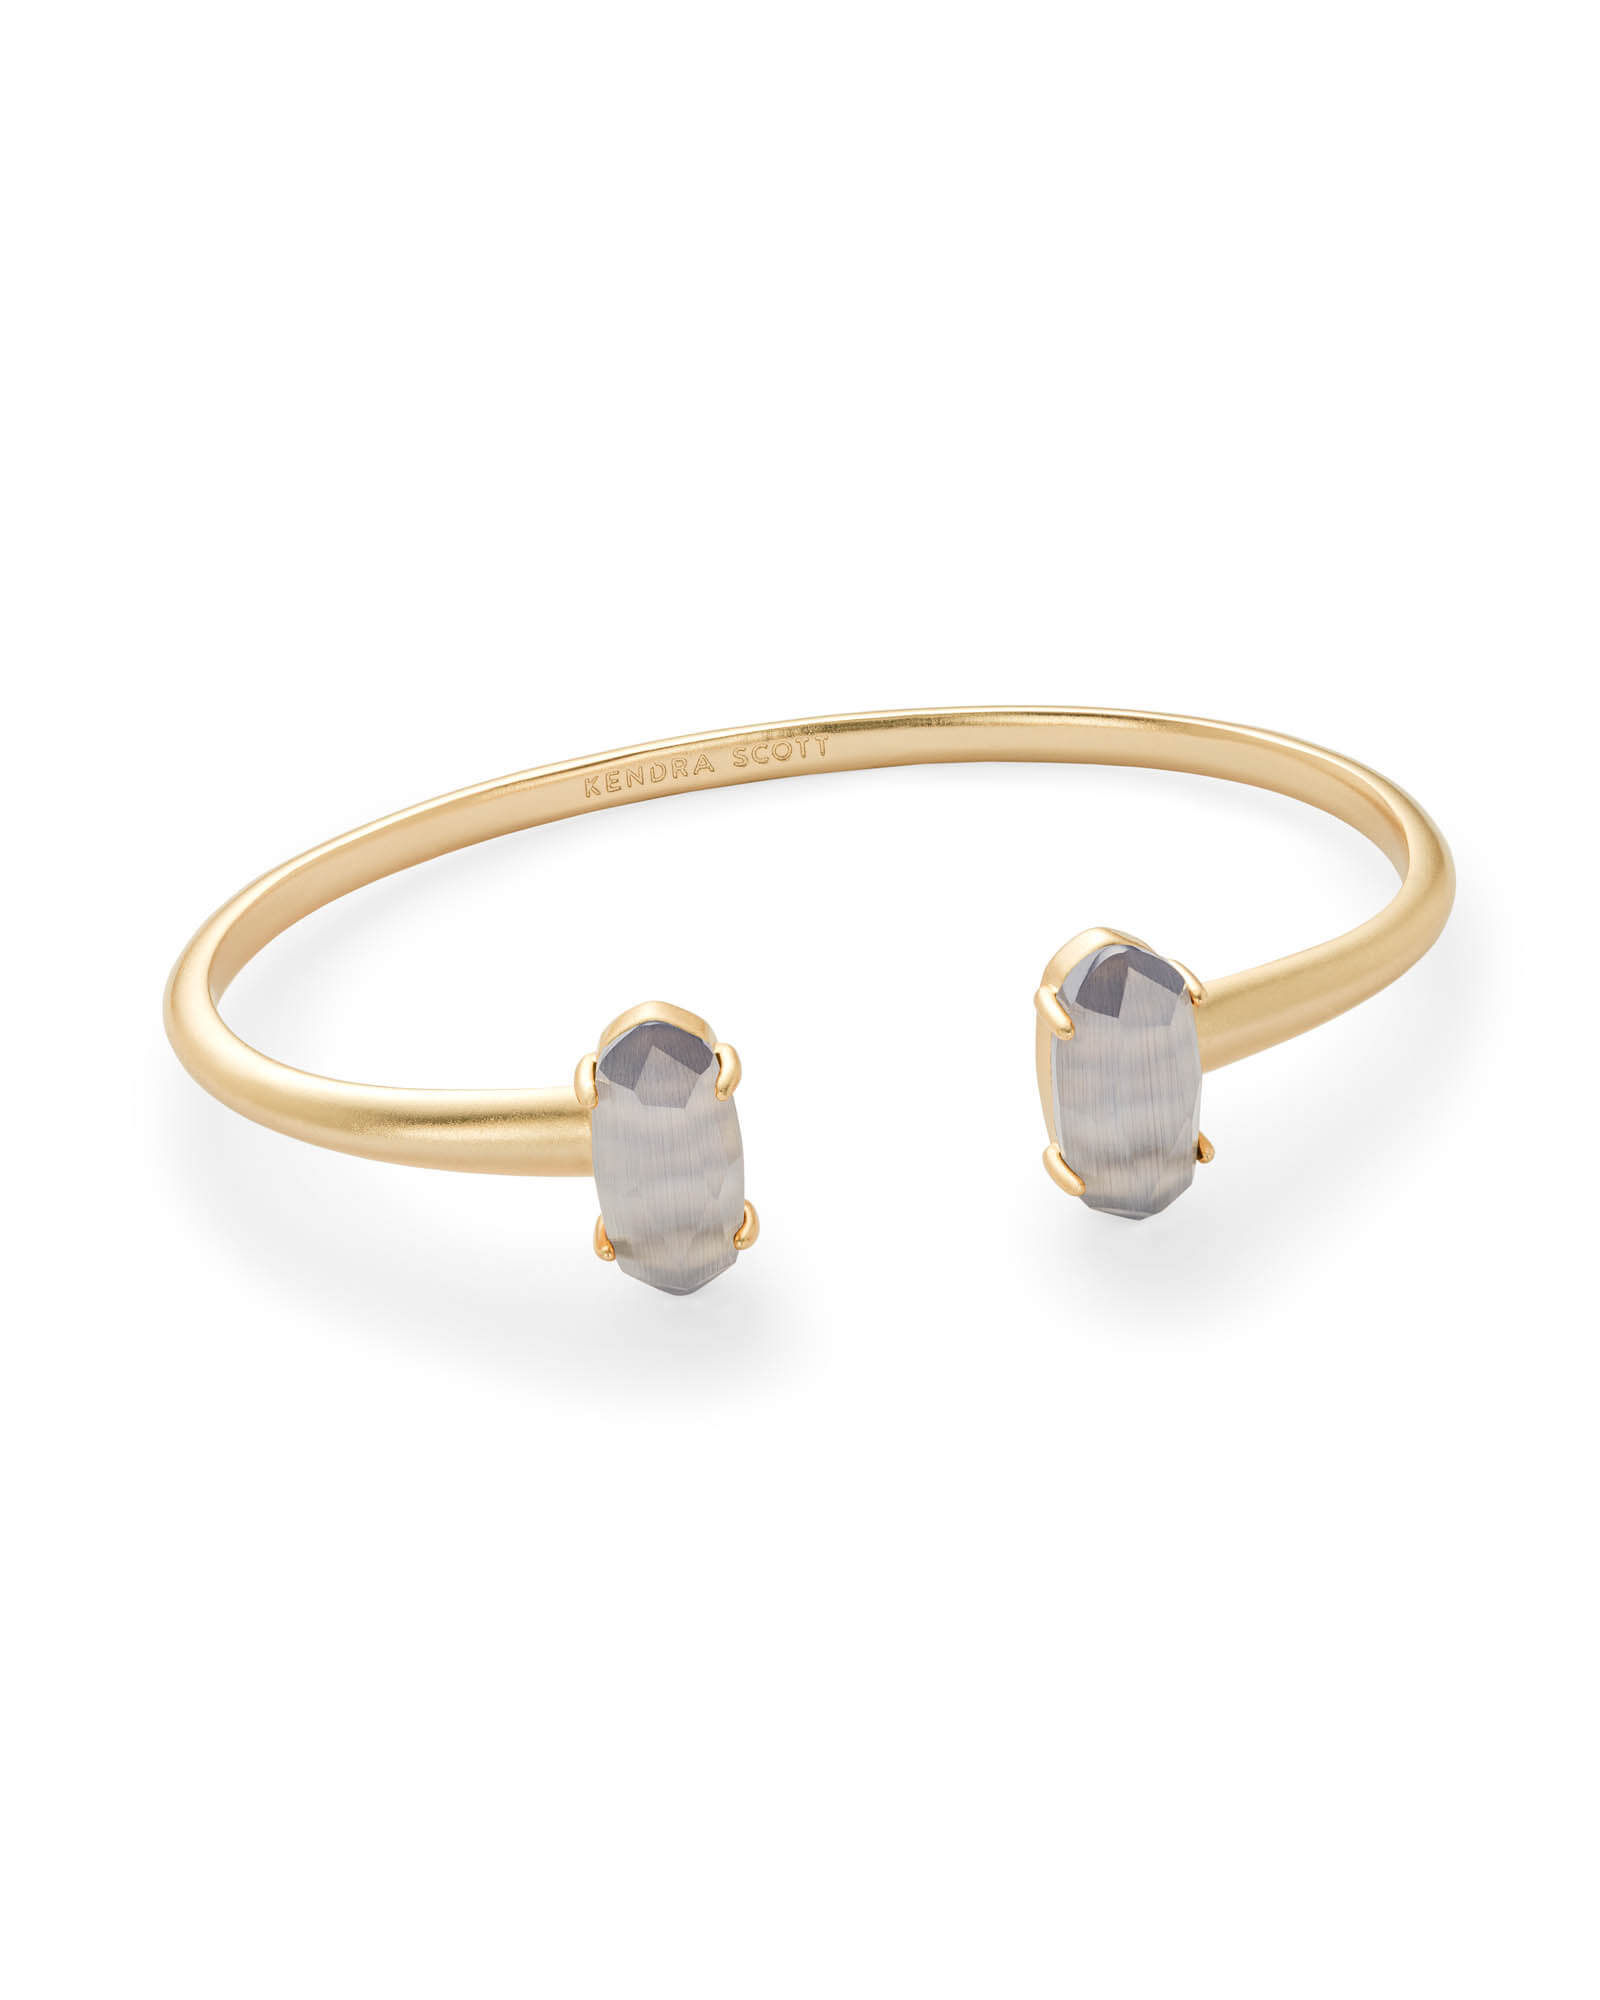 Edie Gold Cuff Bracelet in Slate Cats Eye